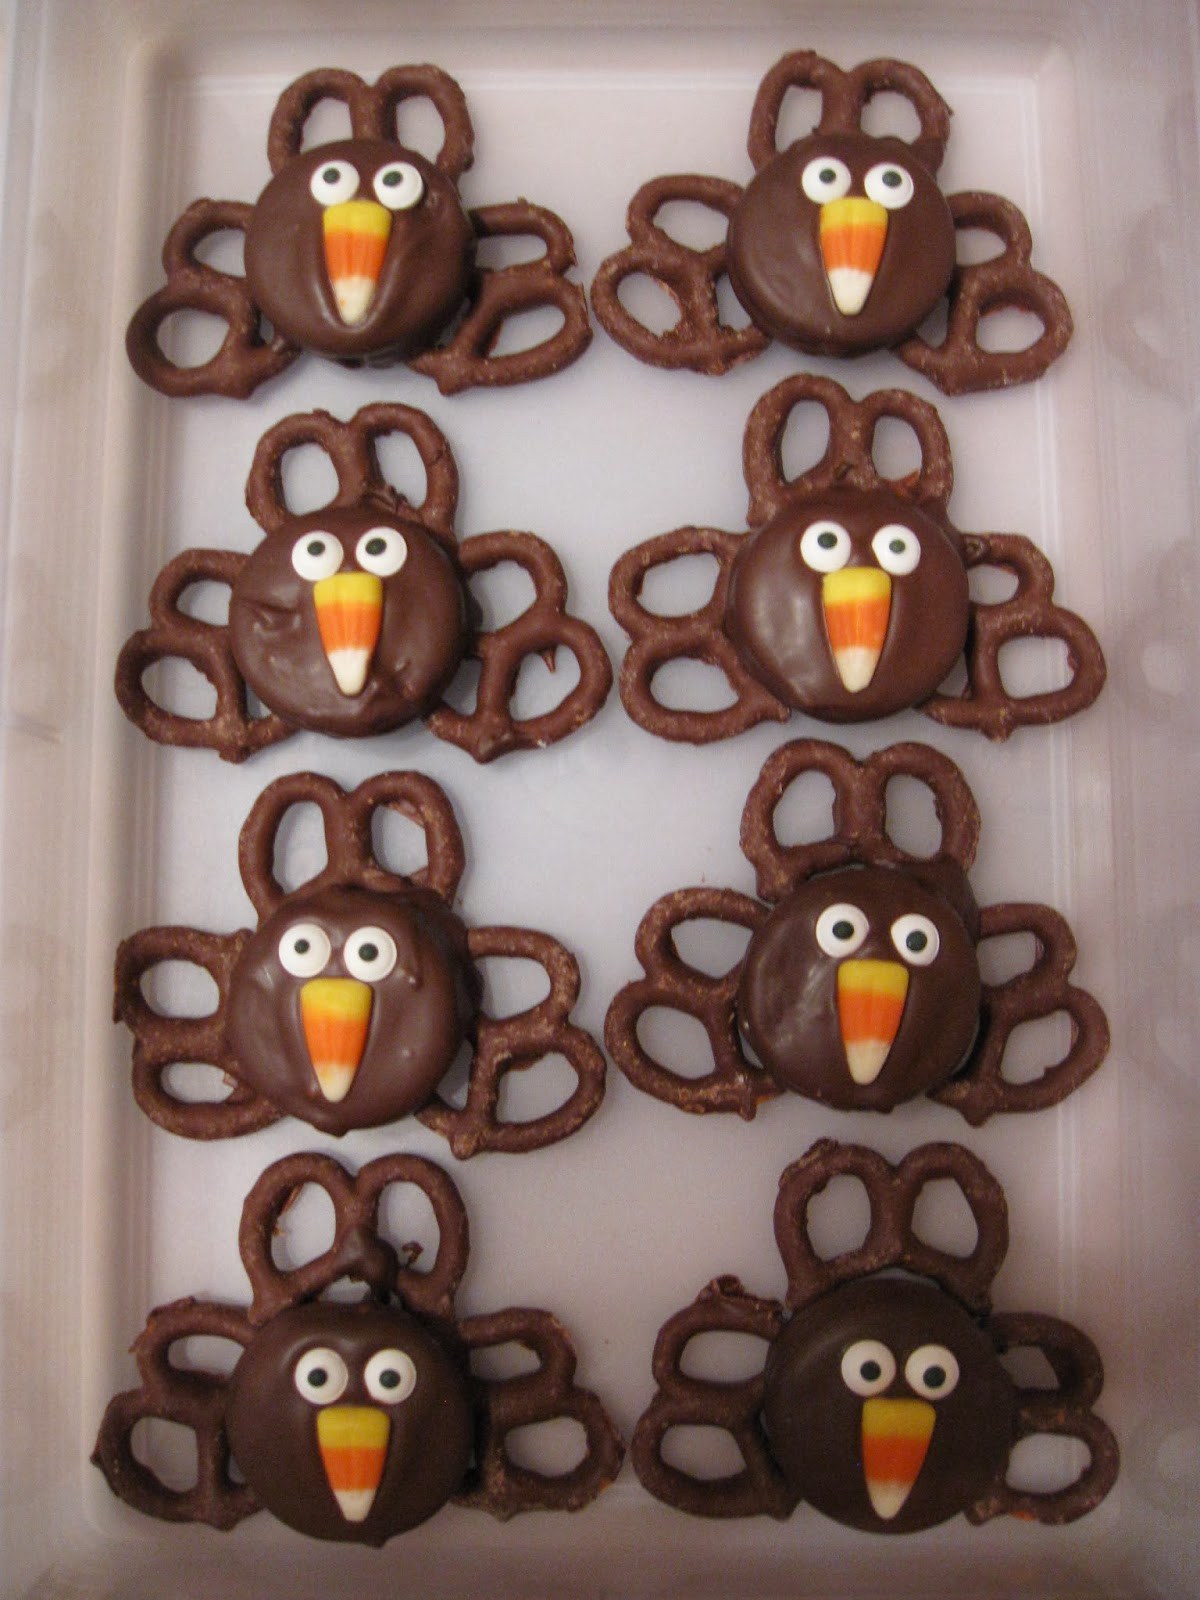 Turkey Treats For Thanksgiving  Orchard Girls Top 10 Thanksgiving Snacks and Treats